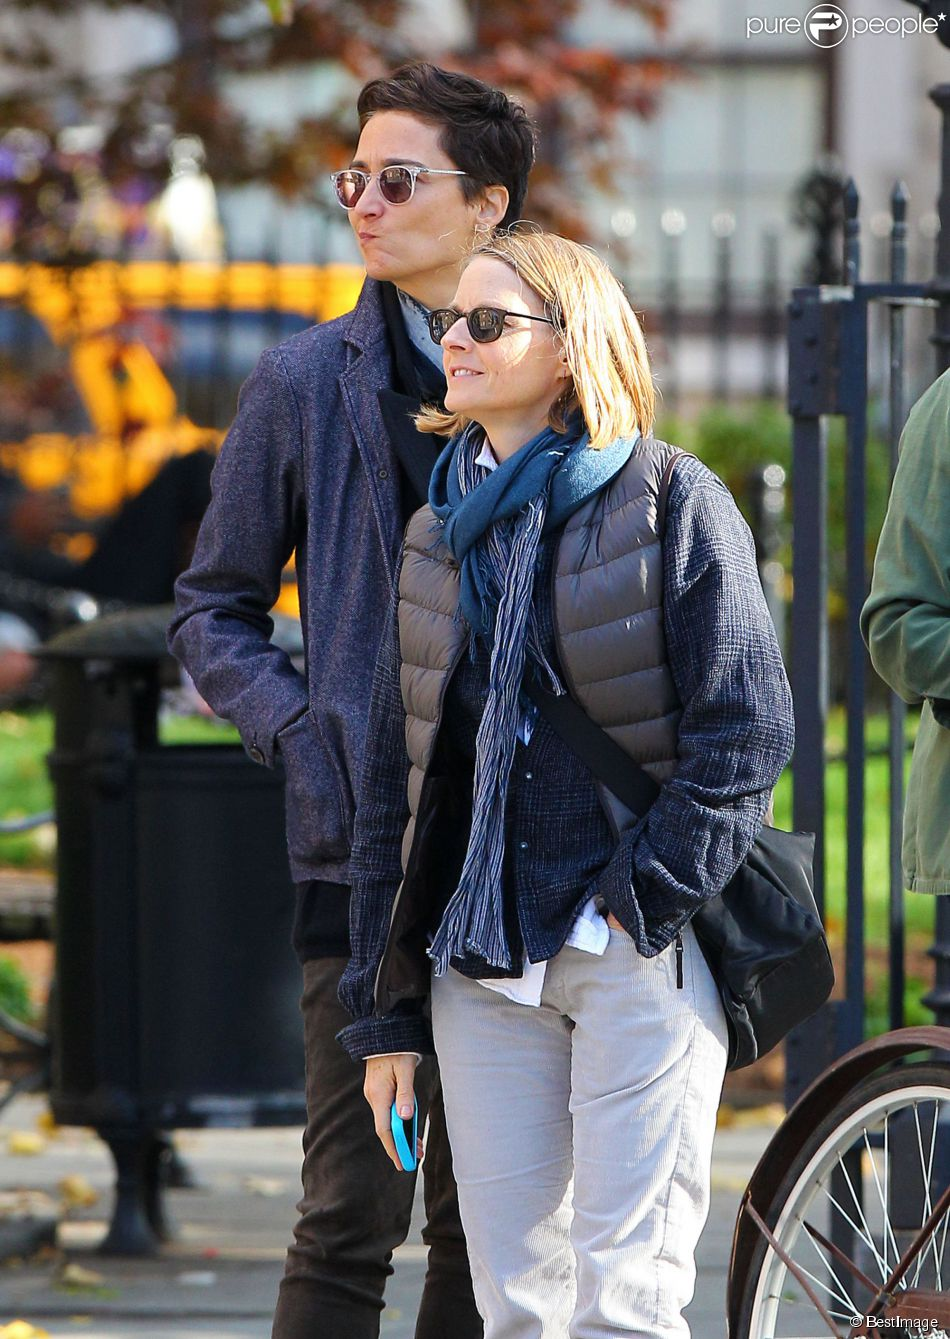 Jodie foster alexandra hedison marriage licenses